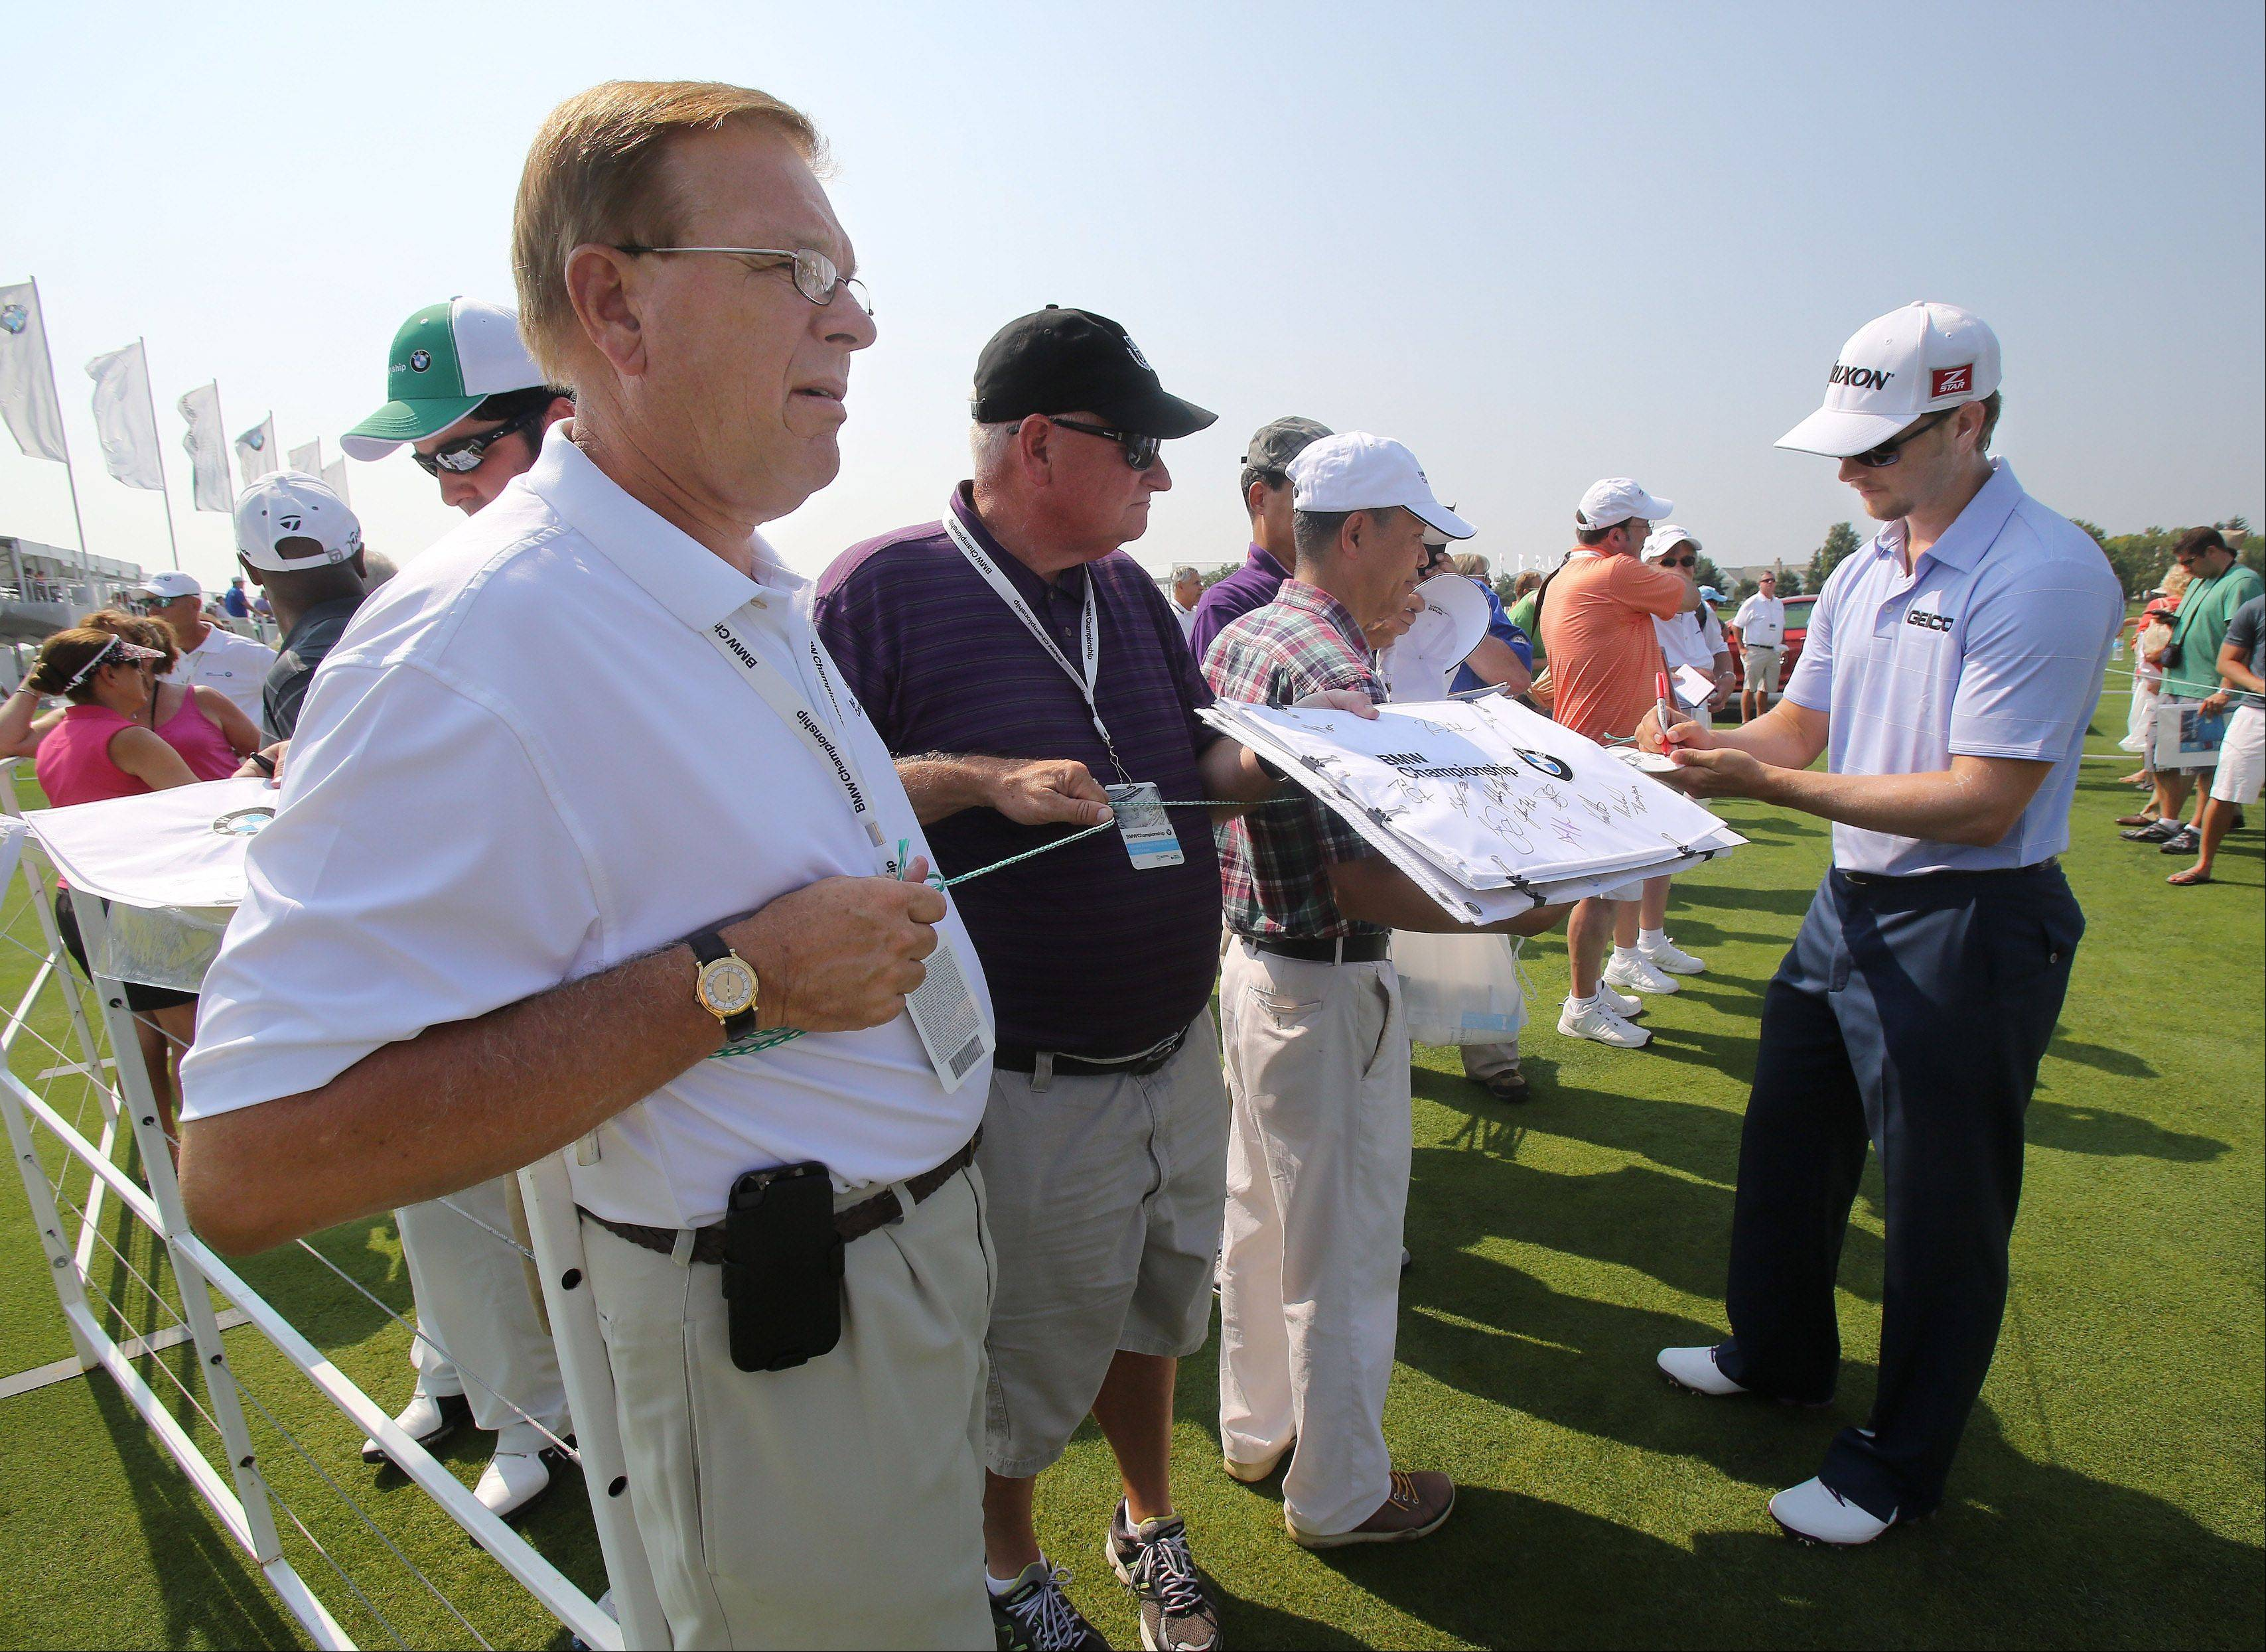 Volunteer C.M. Bottema of Indianapolis, left, holds the line as golfer Chris Stroud signs autographs at the BMW Championship at Conway Farms Golf Club in Lake Forest. Volunteers are a crucial part of tournament operations, organizers say.